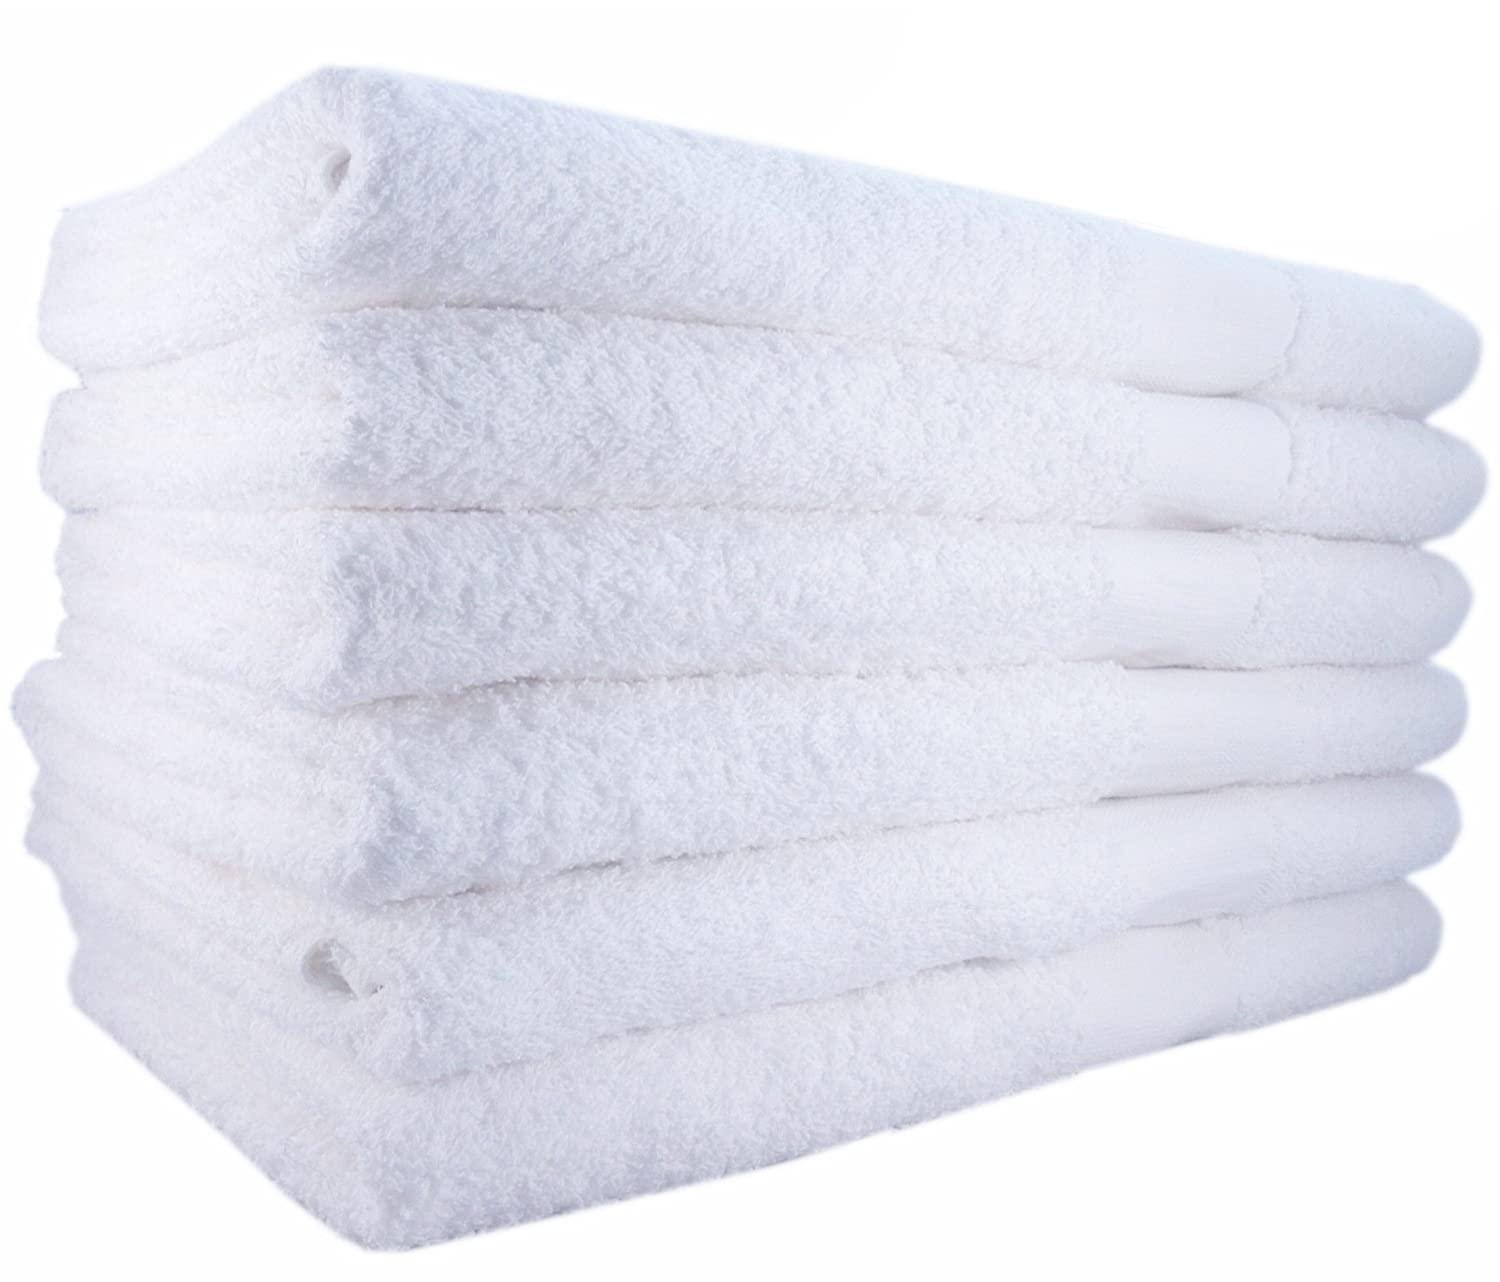 Utopia Towels Hotel-Spa-Pool-Gym Cotton Hair & Bath Towel – 12 Pack, White, Super Soft, Easy Care, Ringspun Cotton for Maximum Softness and Absorbency (22x 44) - by UT1222x44